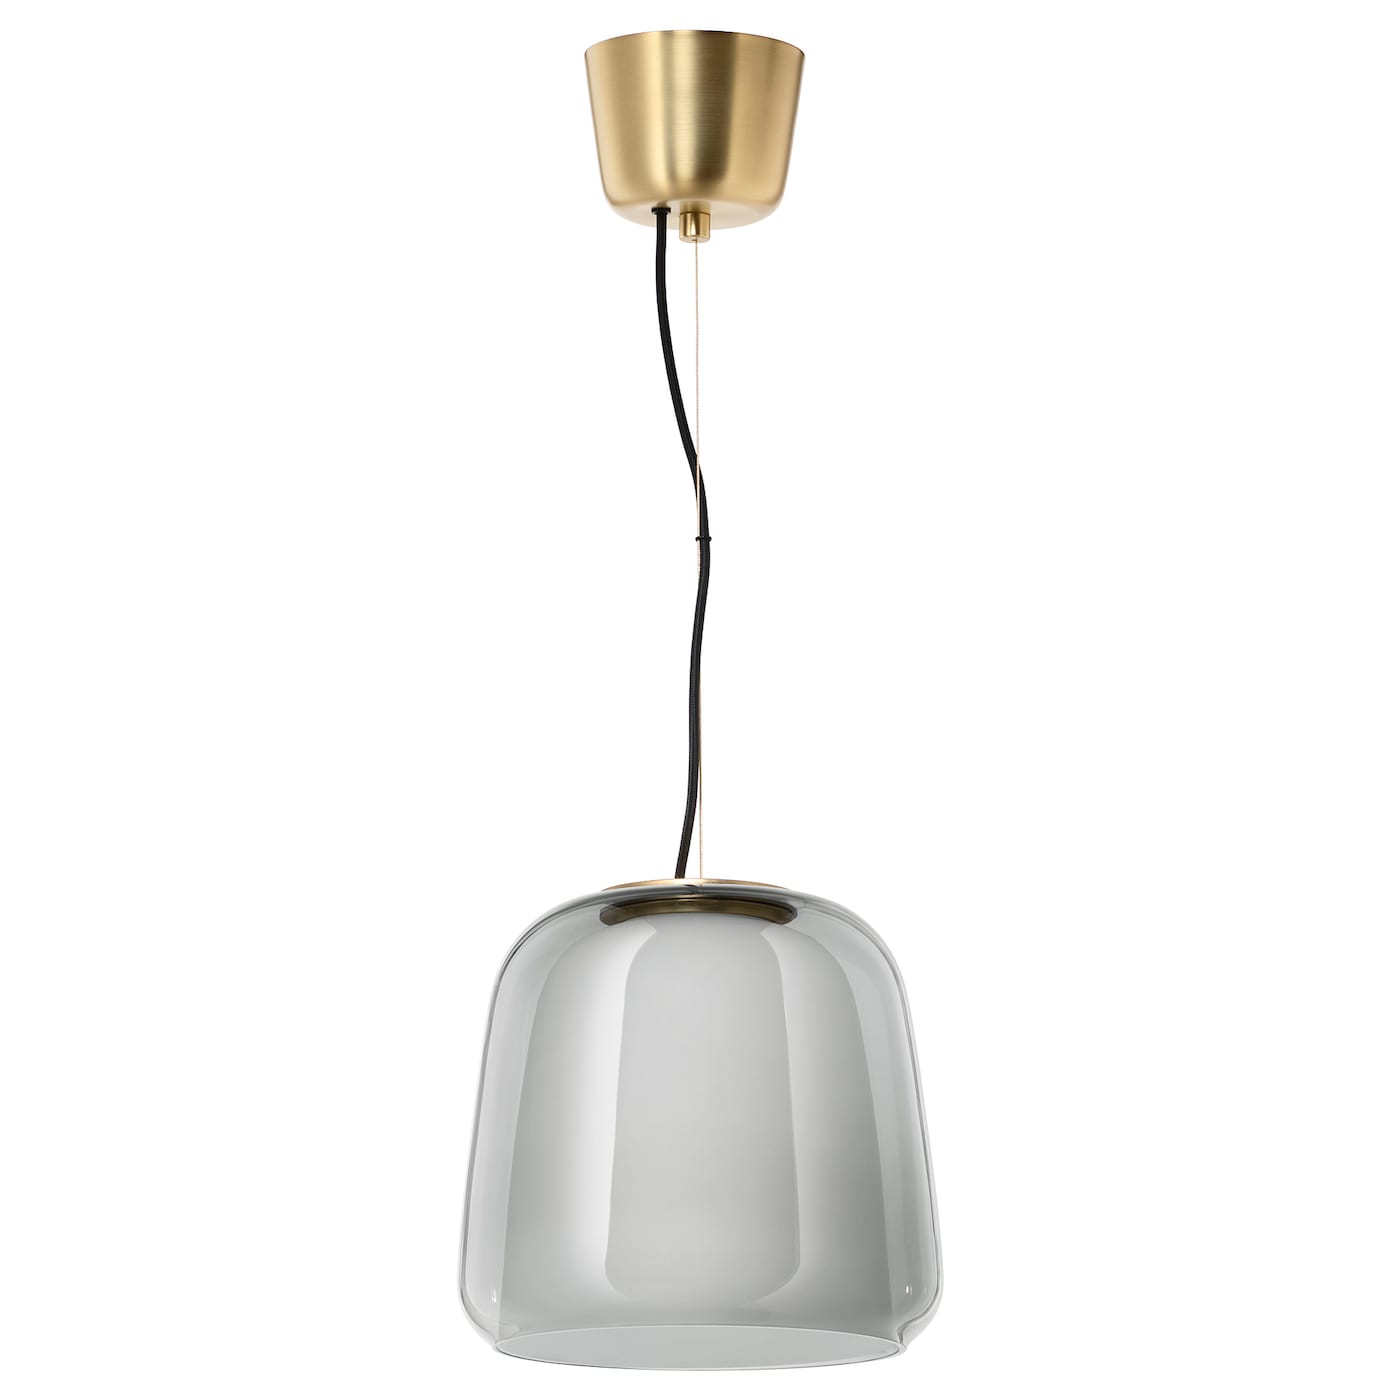 IKEA EVEDAL pendant lamp The lampshades in glass are mouth blown by a skilled craftsperson.